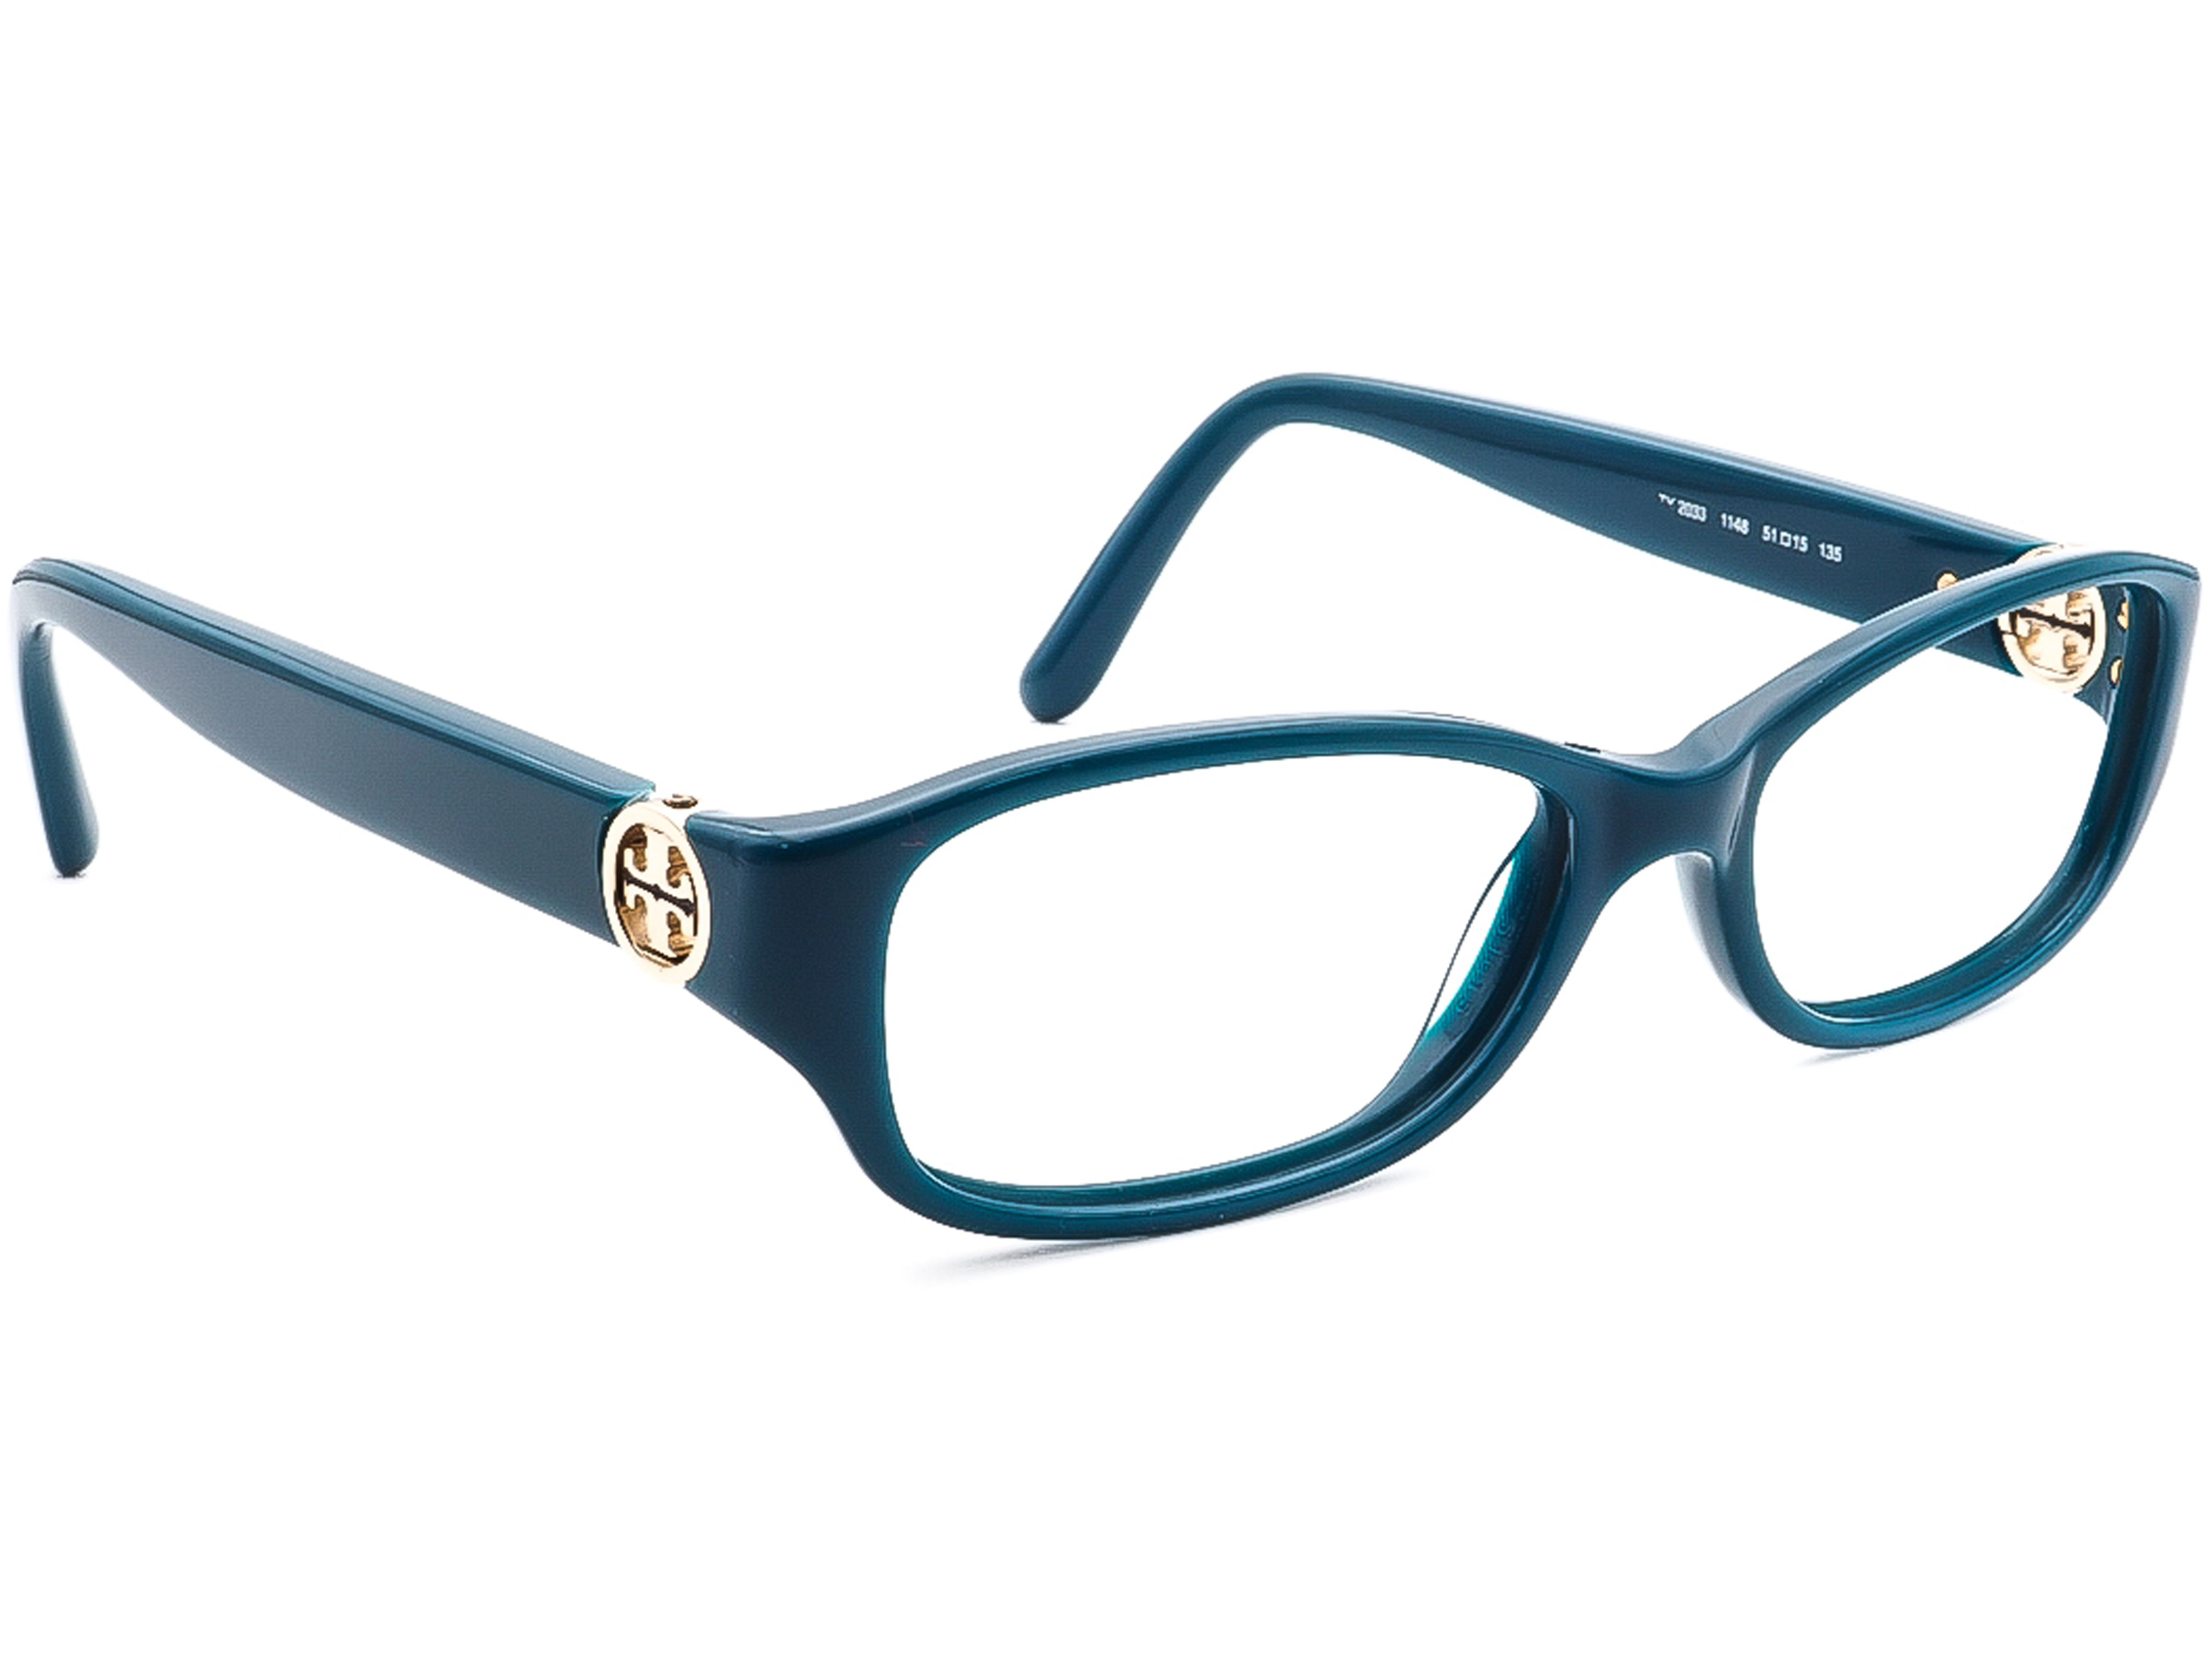 Tory Burch TY 2033 1148 Eyeglasses